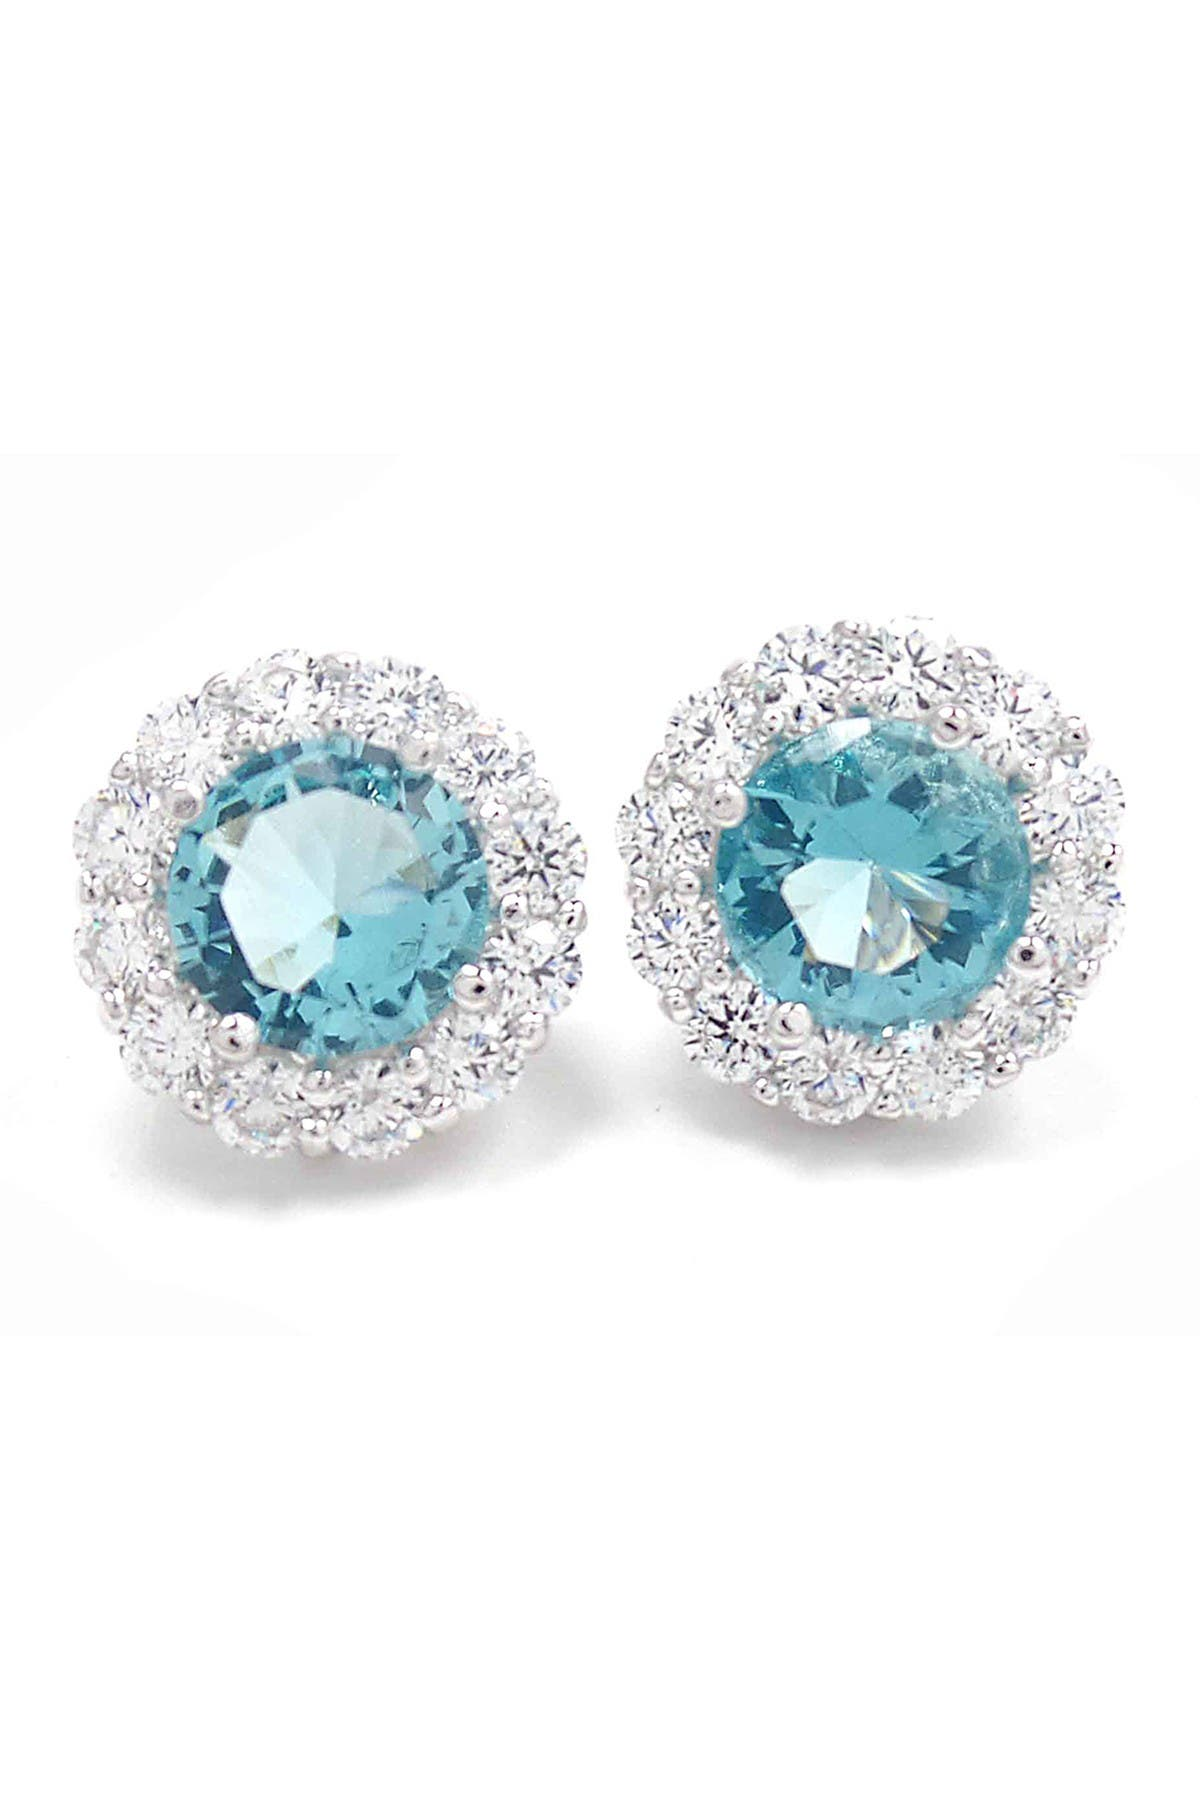 Image of Savvy Cie Rhodium Plated Cubic Zirconia Stud Earrings